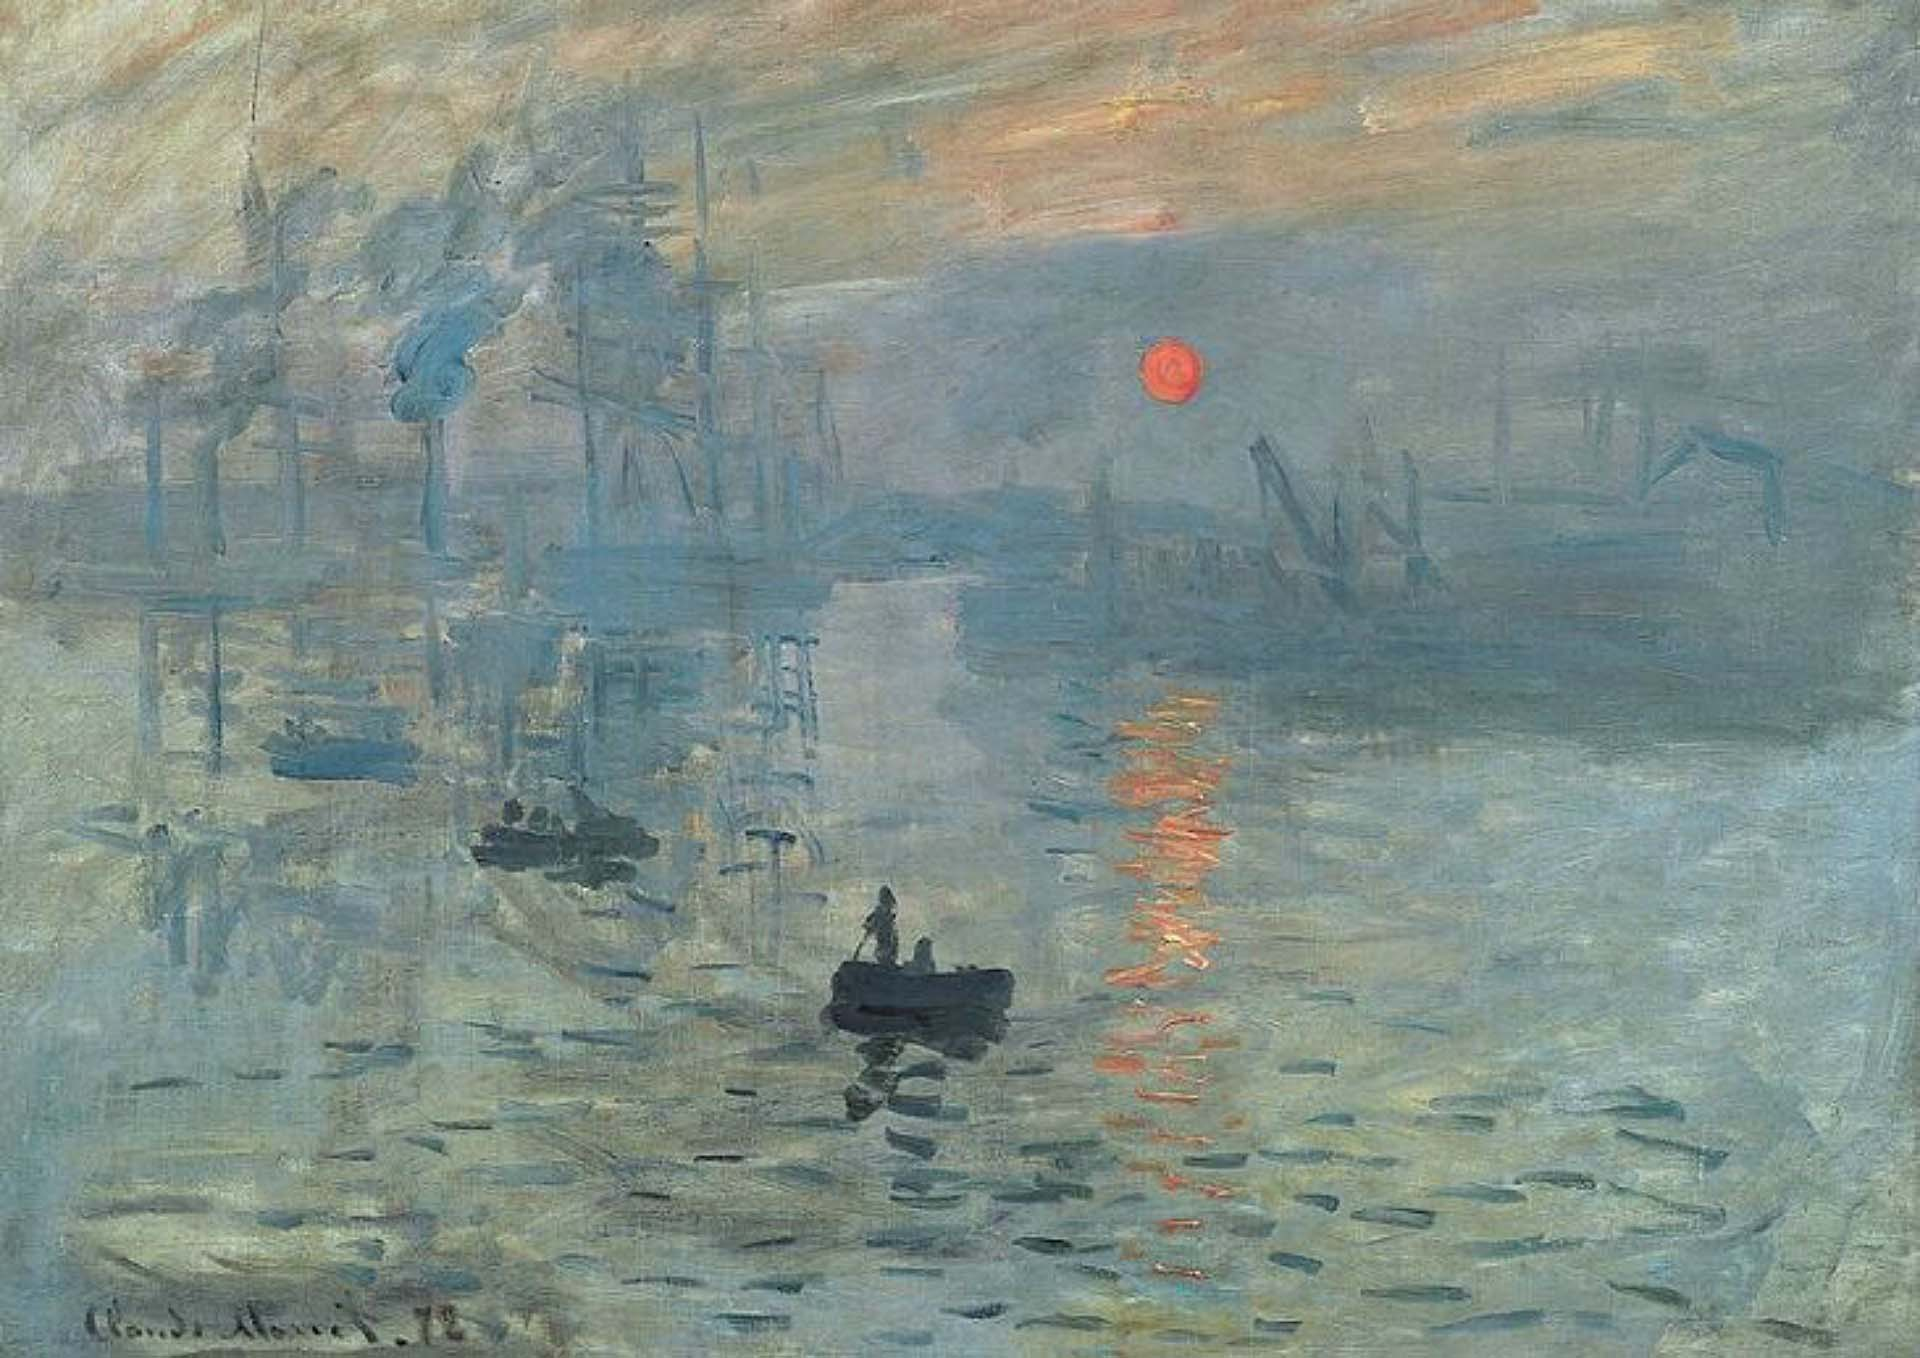 Image of the Sunrise by Claude Monet, muted blues with an orange sun